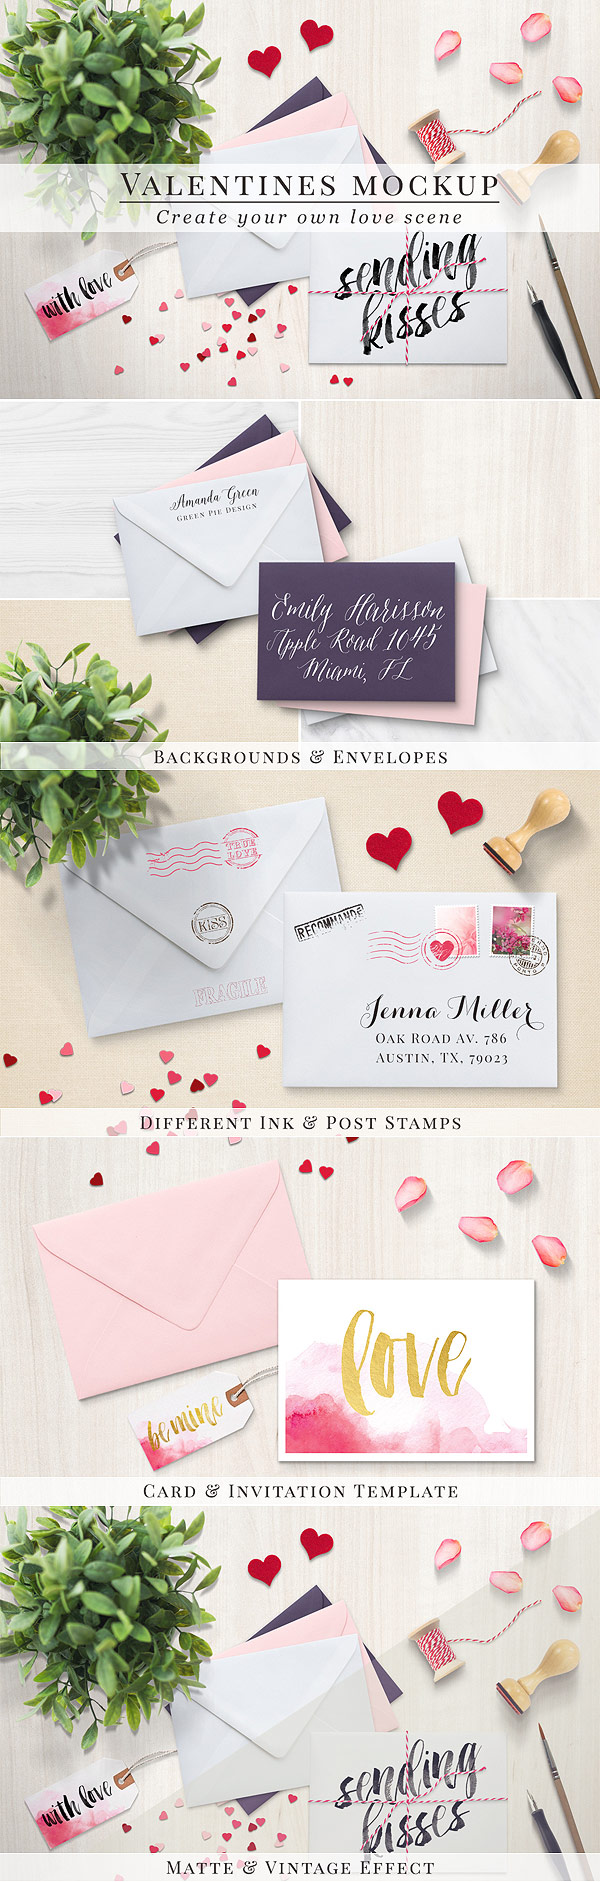 Valentines mockup - envelopes (46)